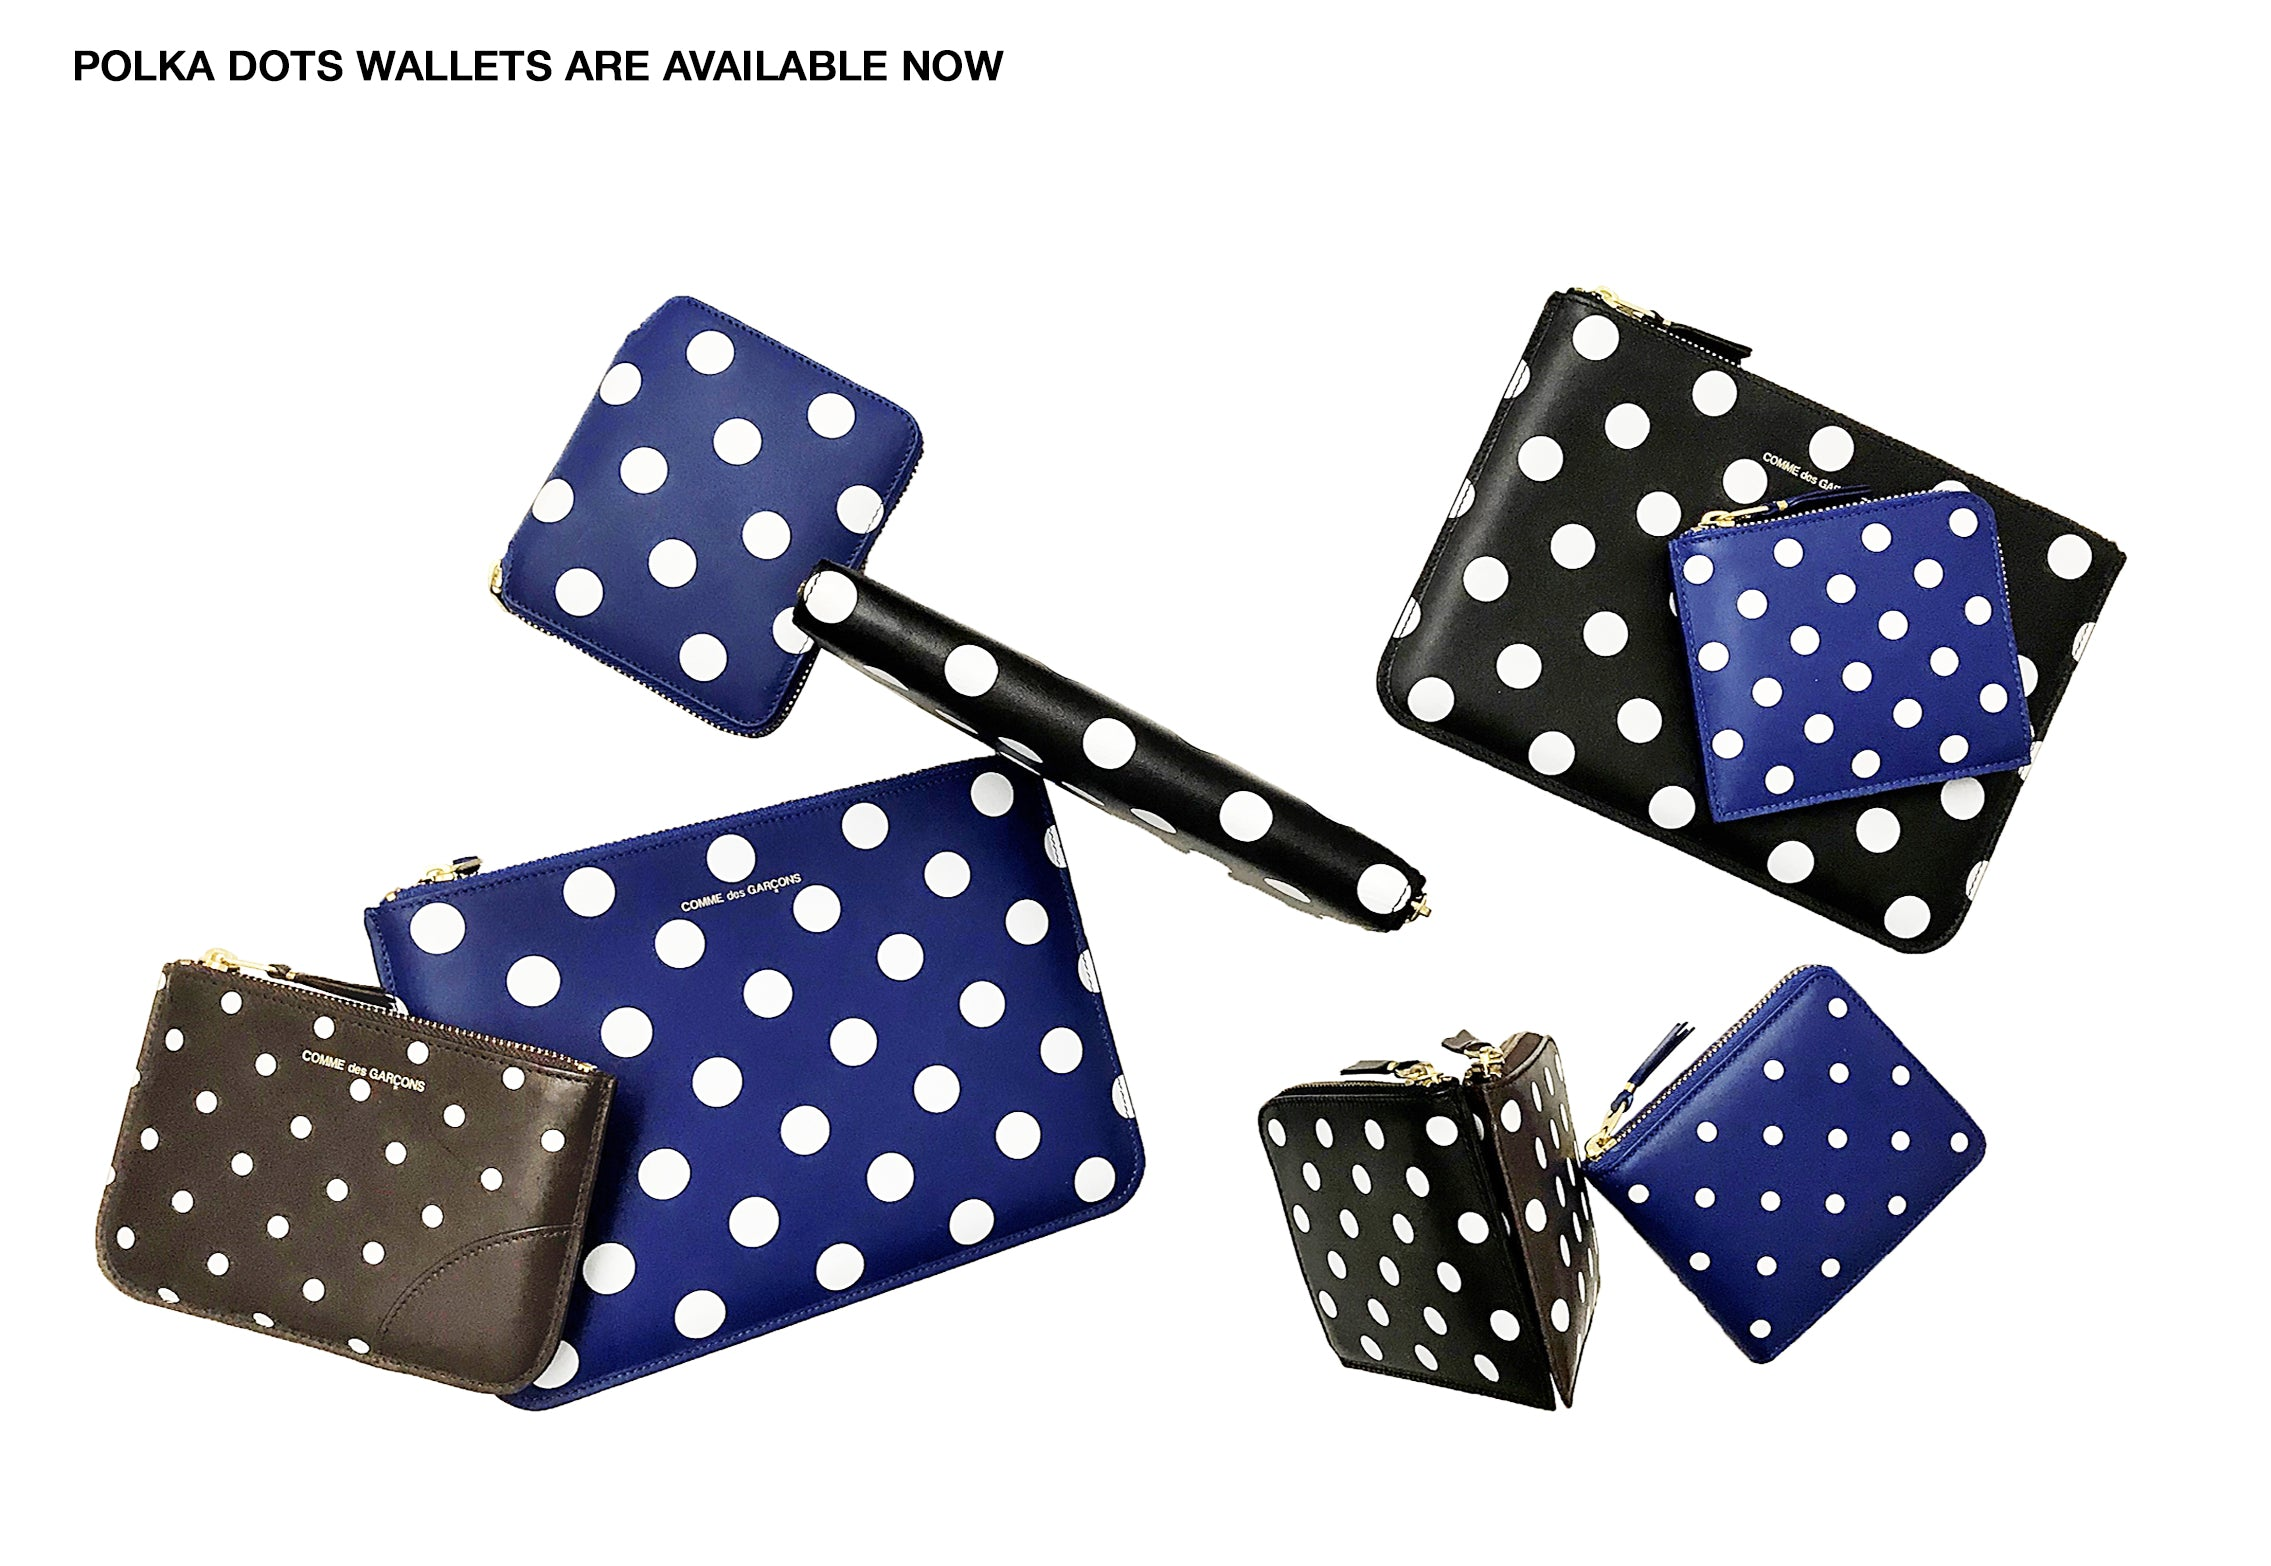 comme des garcons germany online shop banner CDG Deutschland POLKA DOTS WALLETS